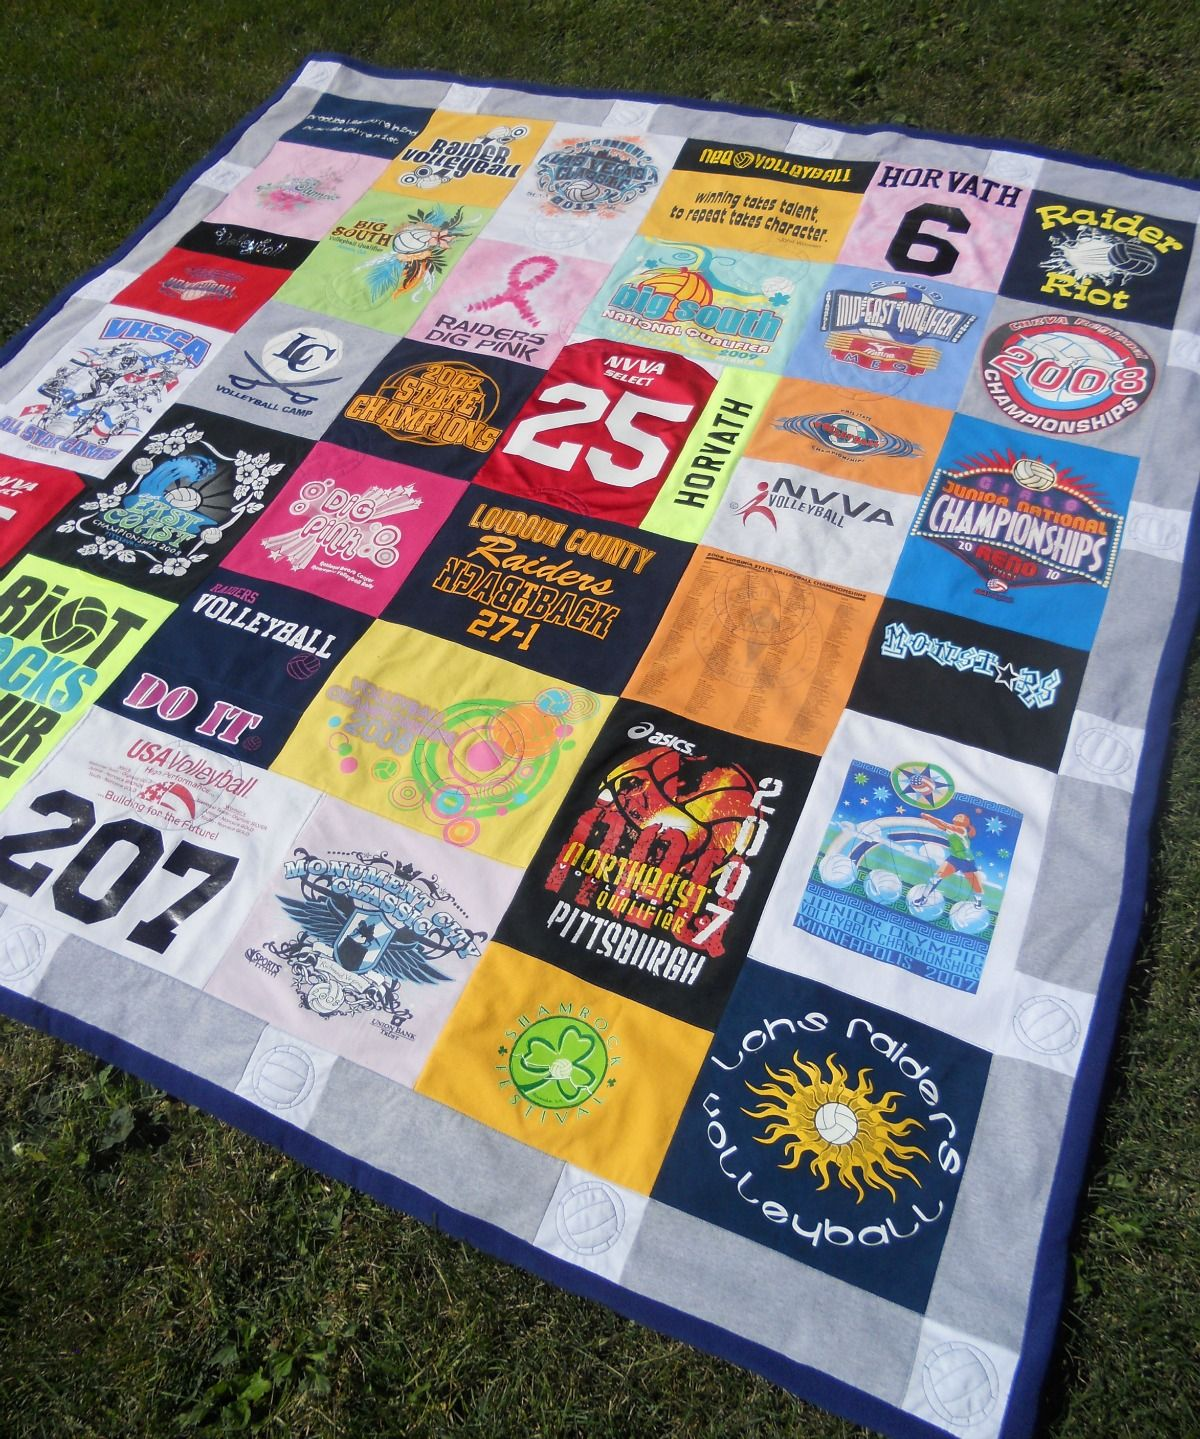 33 Volleyball T Shirts And Jerseys To Make A Full Size 86 X 86 T Shirt Volleyball Quilt For A Customer In Va Dig Pink Voll Shirt Quilt Jersey Quilt Quilts